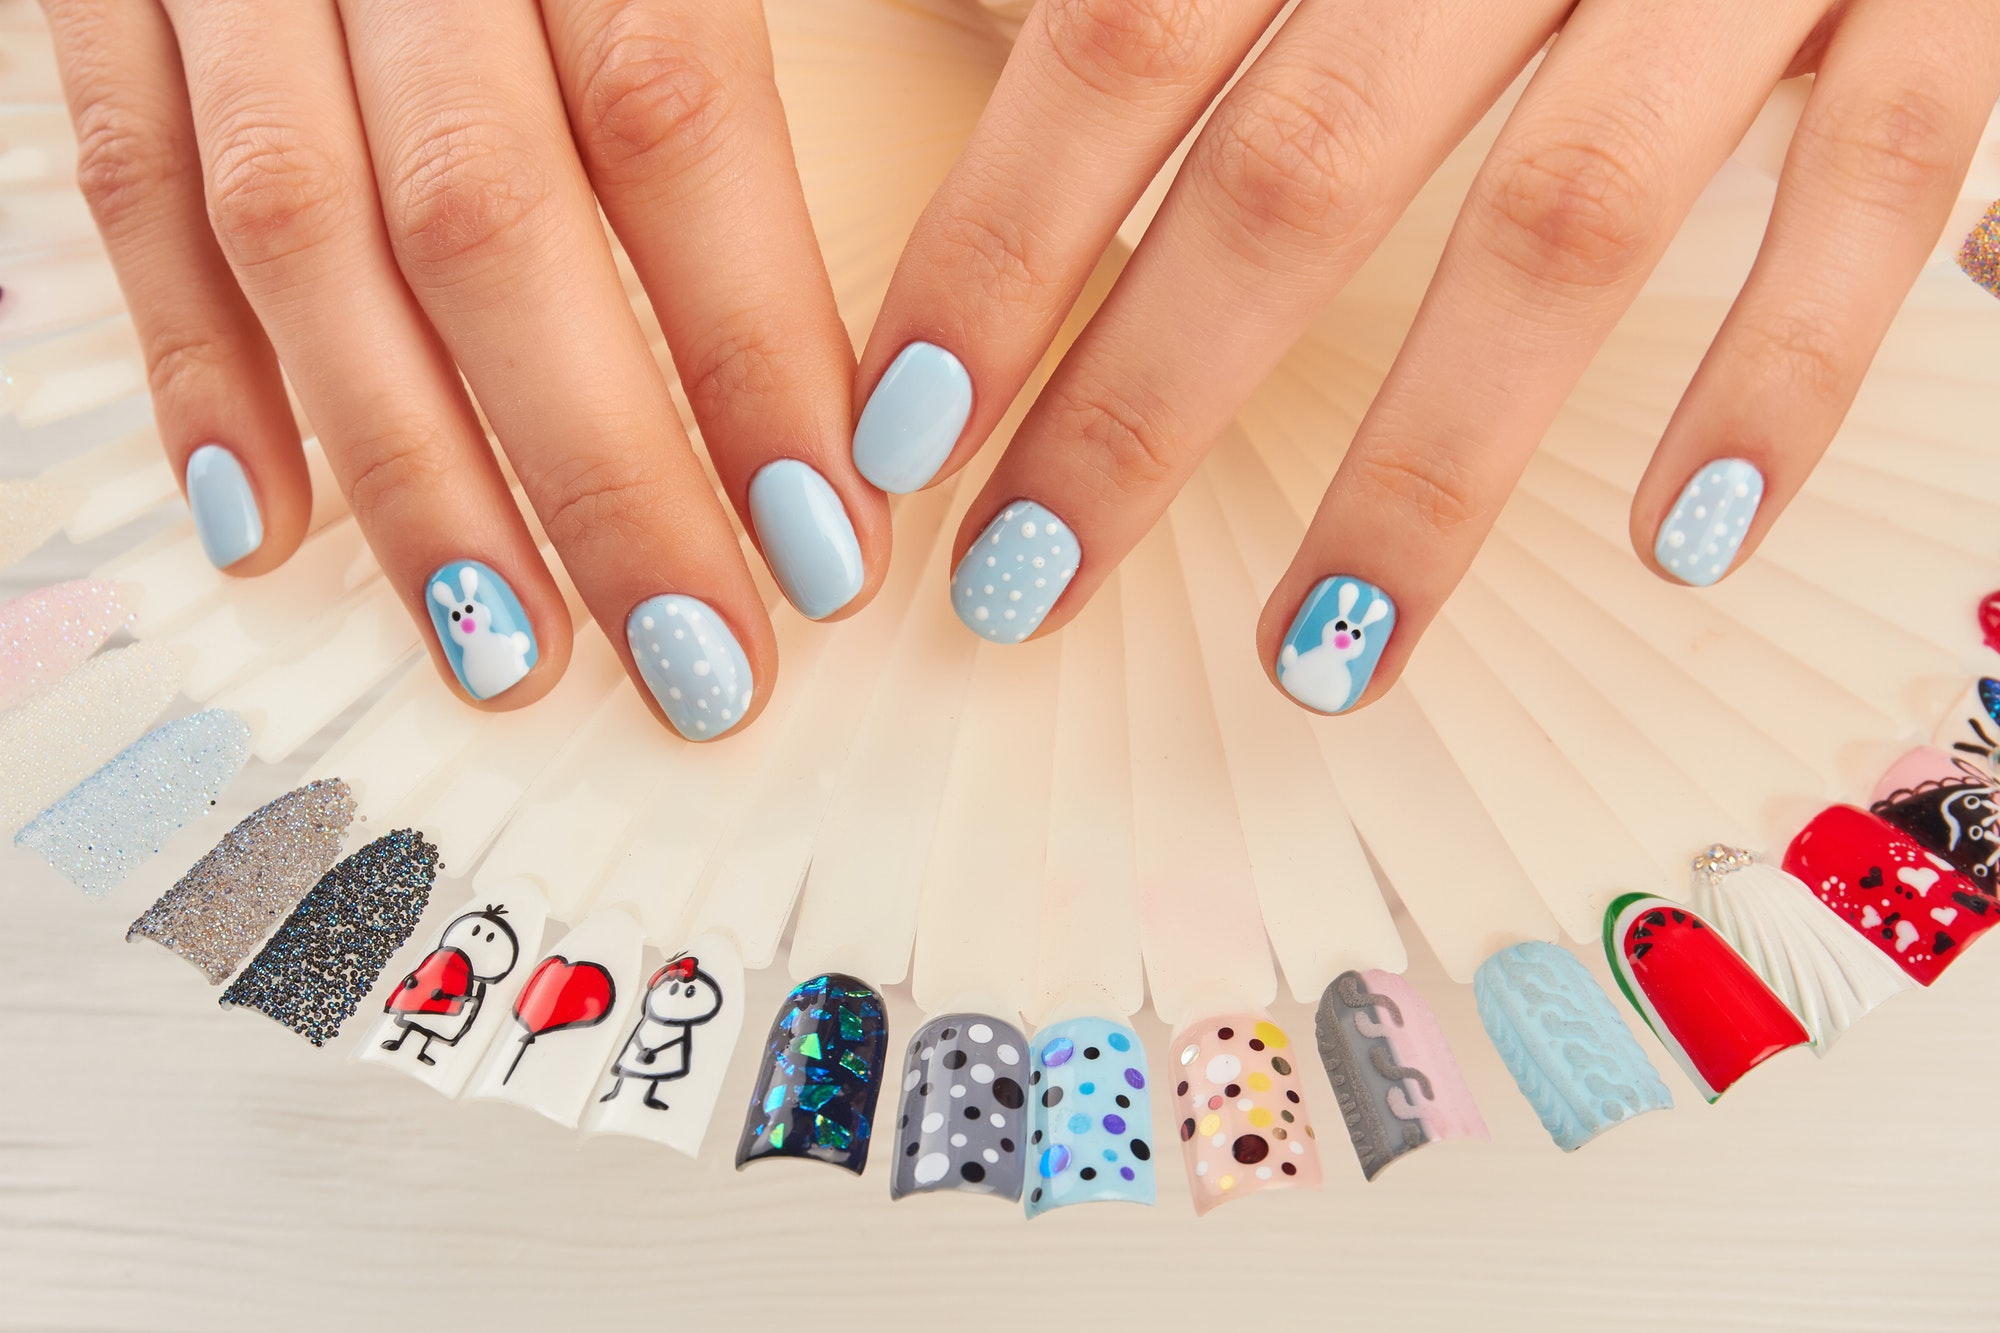 Manicured hands and nail art samples